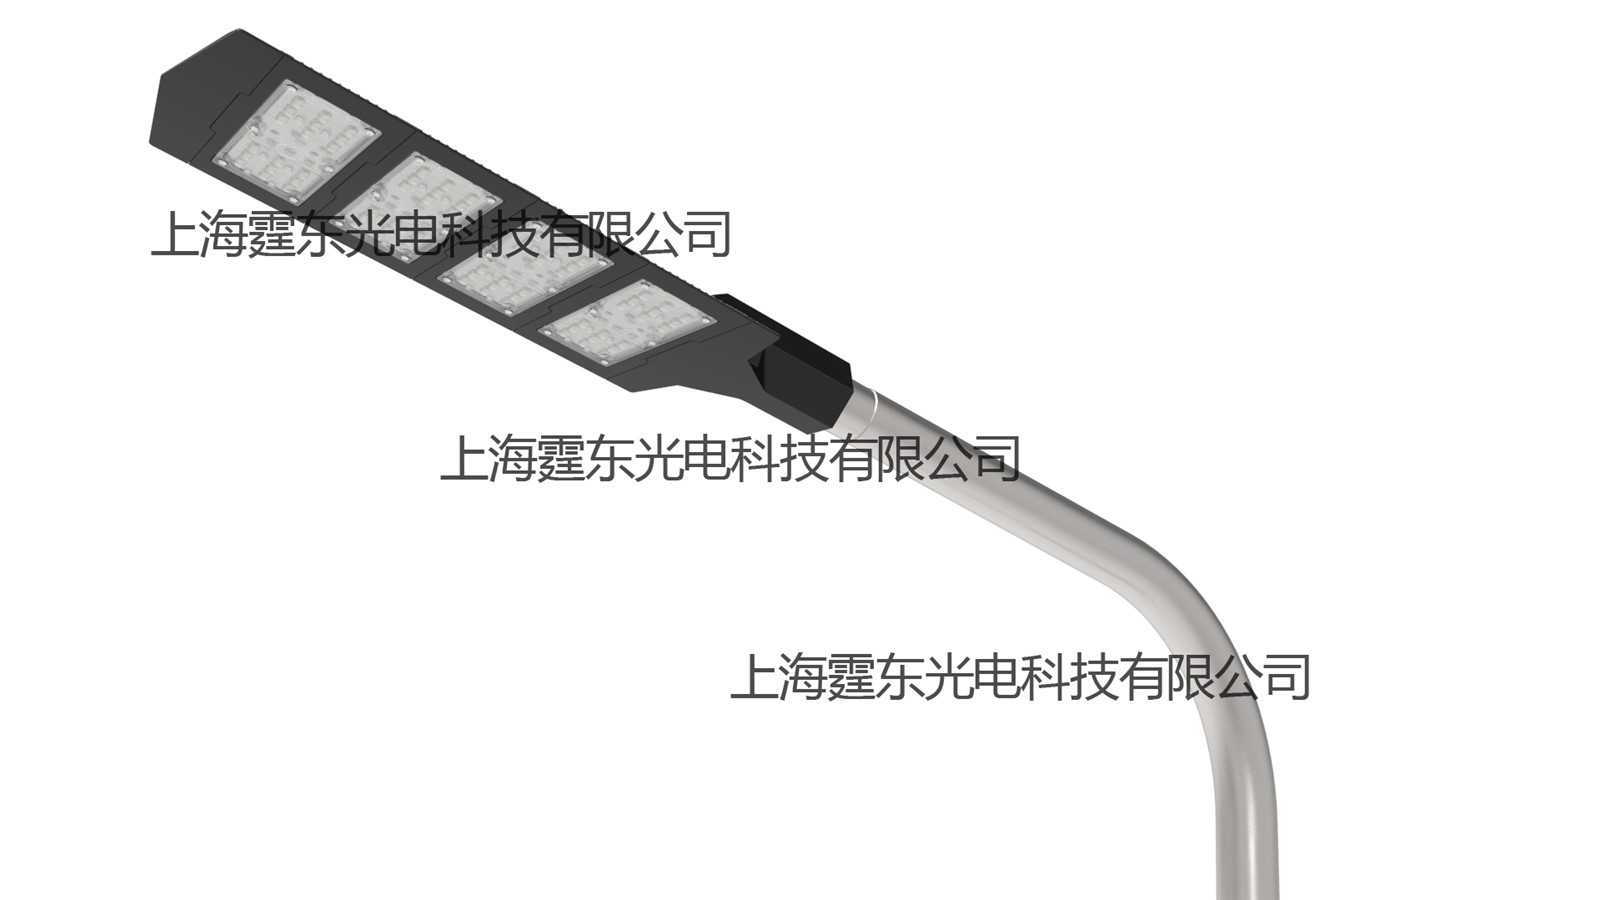 R2011 street light,lighting protection unit,easy installation